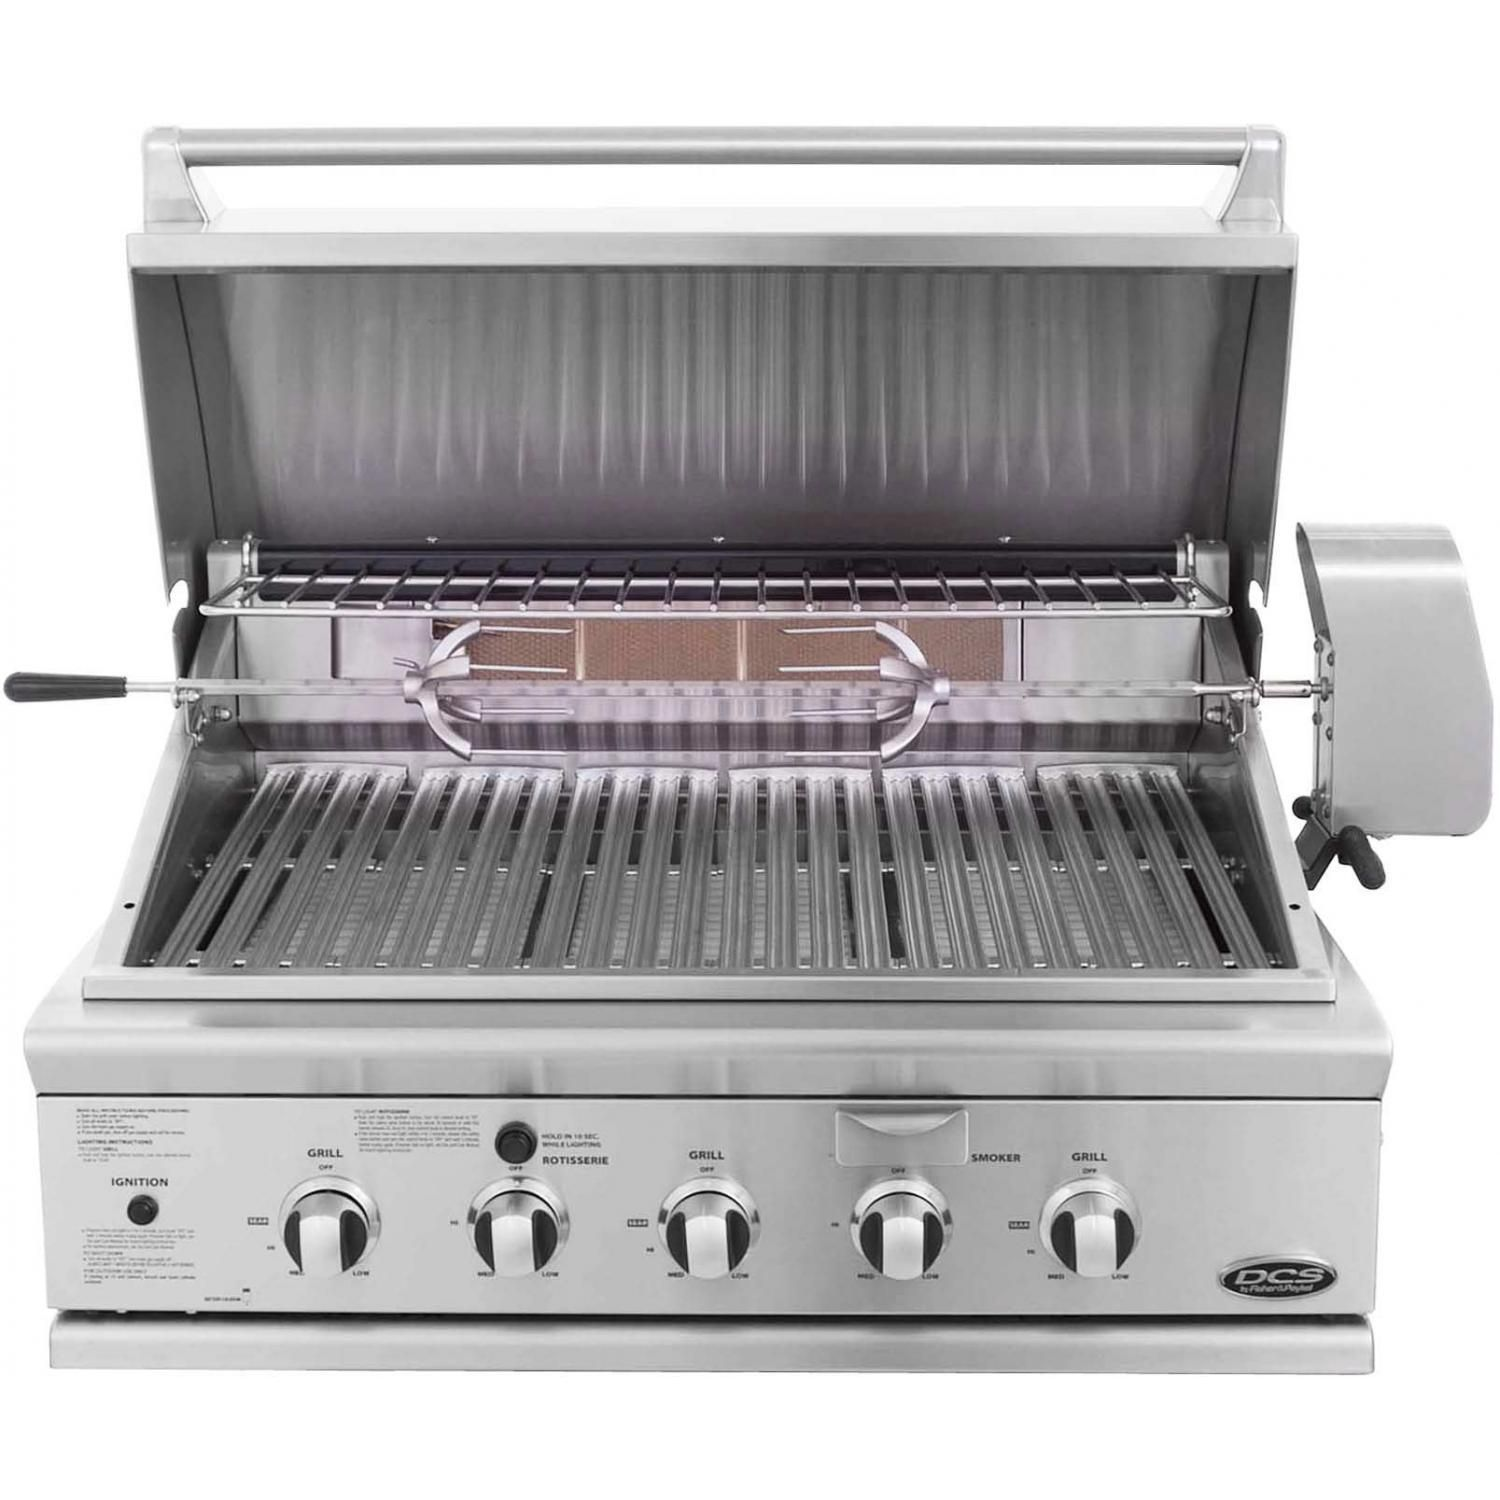 Dcs Series 7 Traditional 36 Inch Built In Natural Gas Grill With Rotisserie Bh1 36r N Parrilla